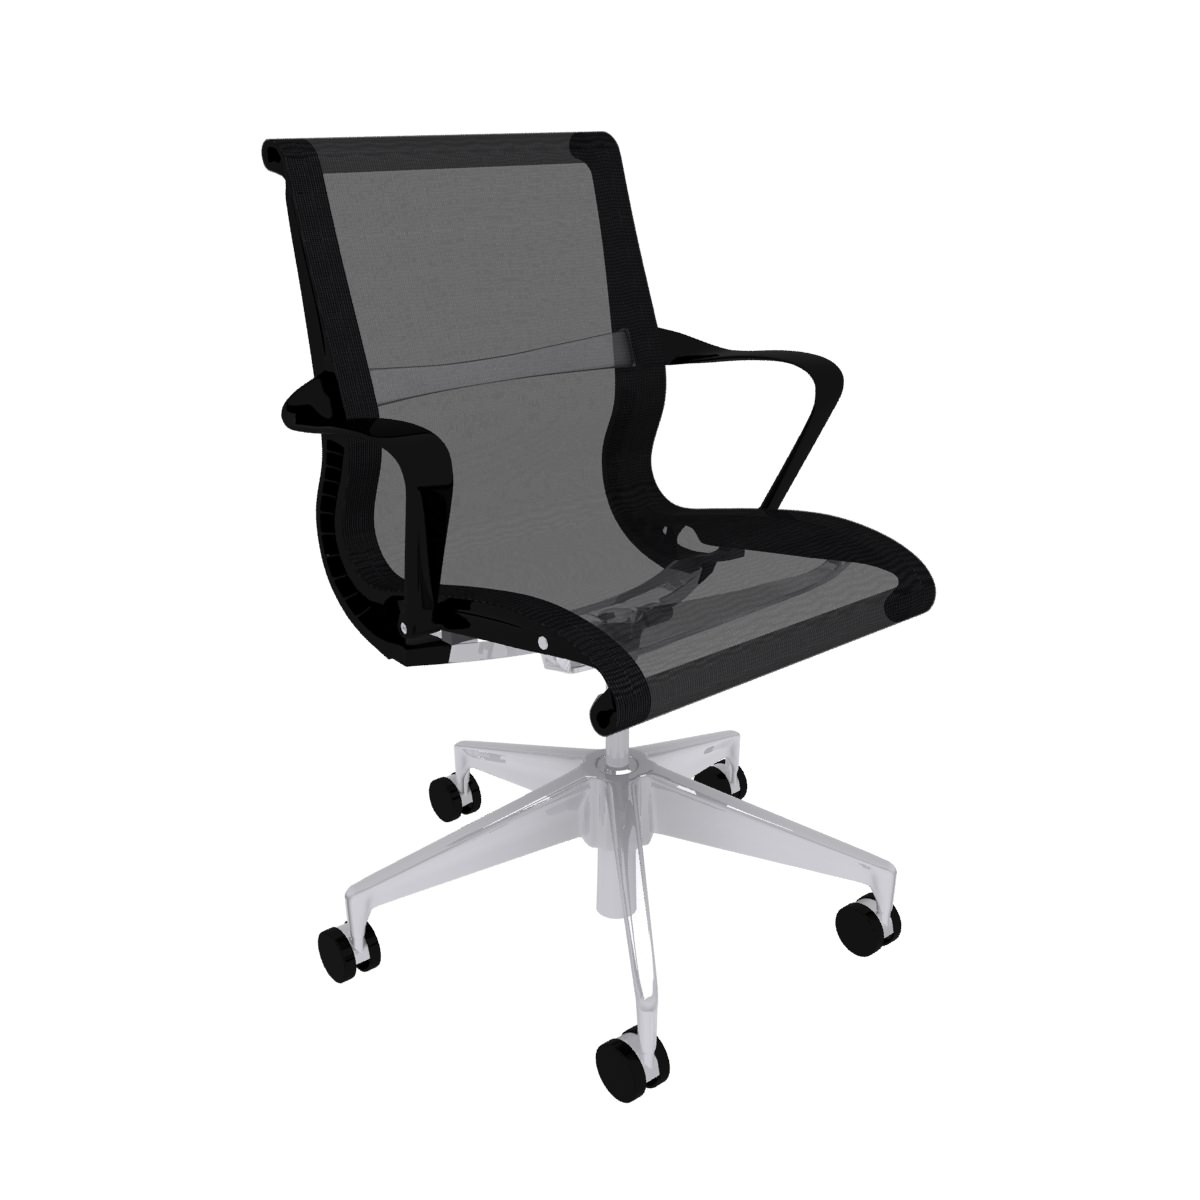 Herman Miller Setu Chair Max 2010 2011 3D Model Max Obj 3ds Fbx C4d Ma